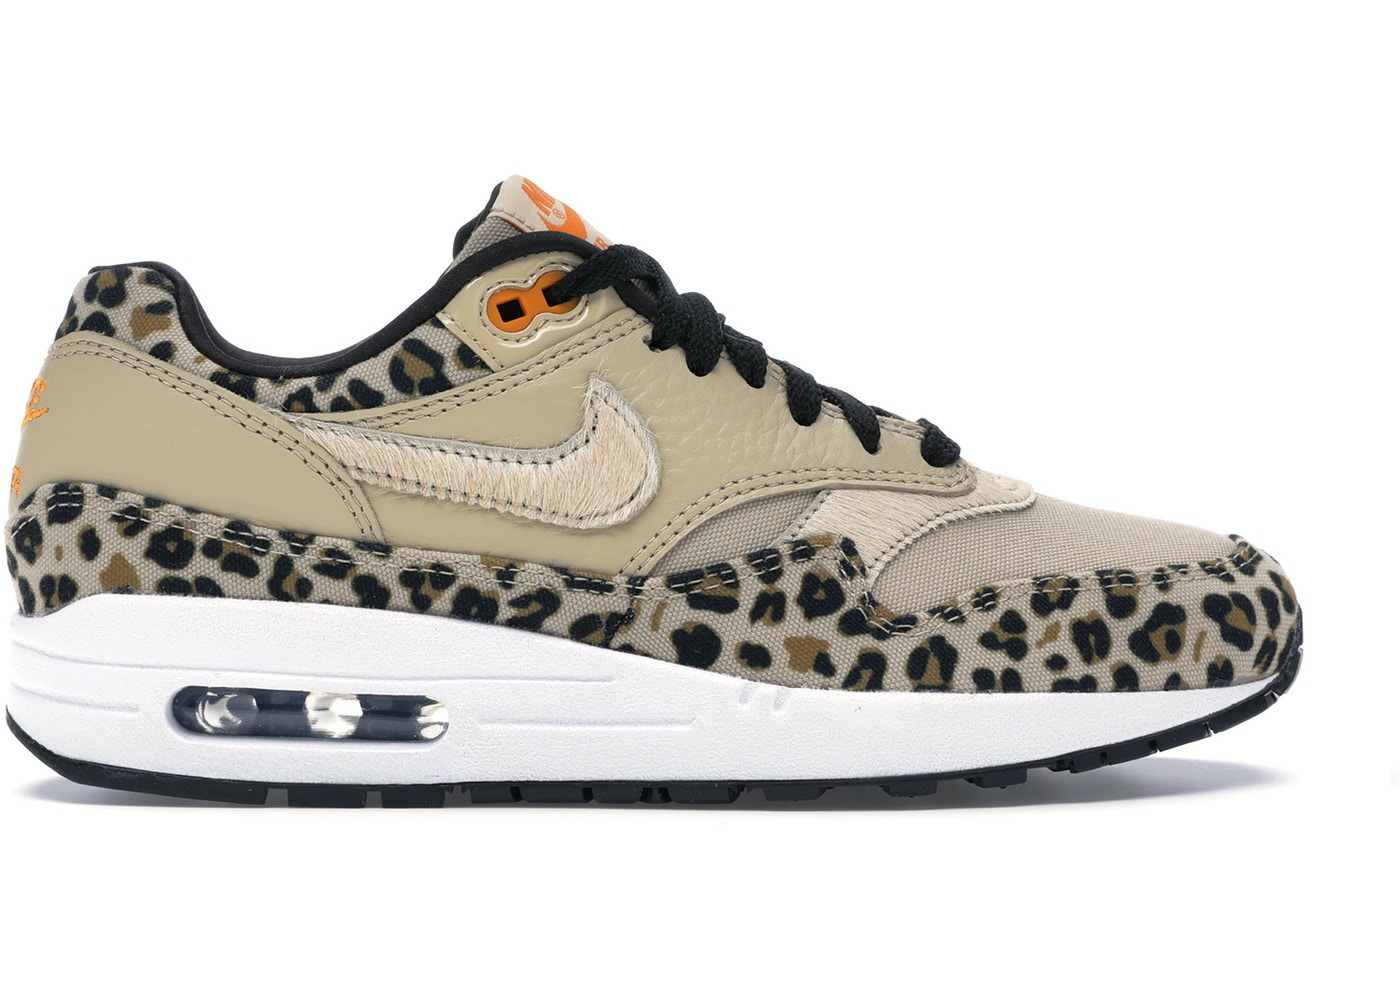 90f76f757dfc Buy Nike Air Max 1 Shoes & Deadstock Sneakers